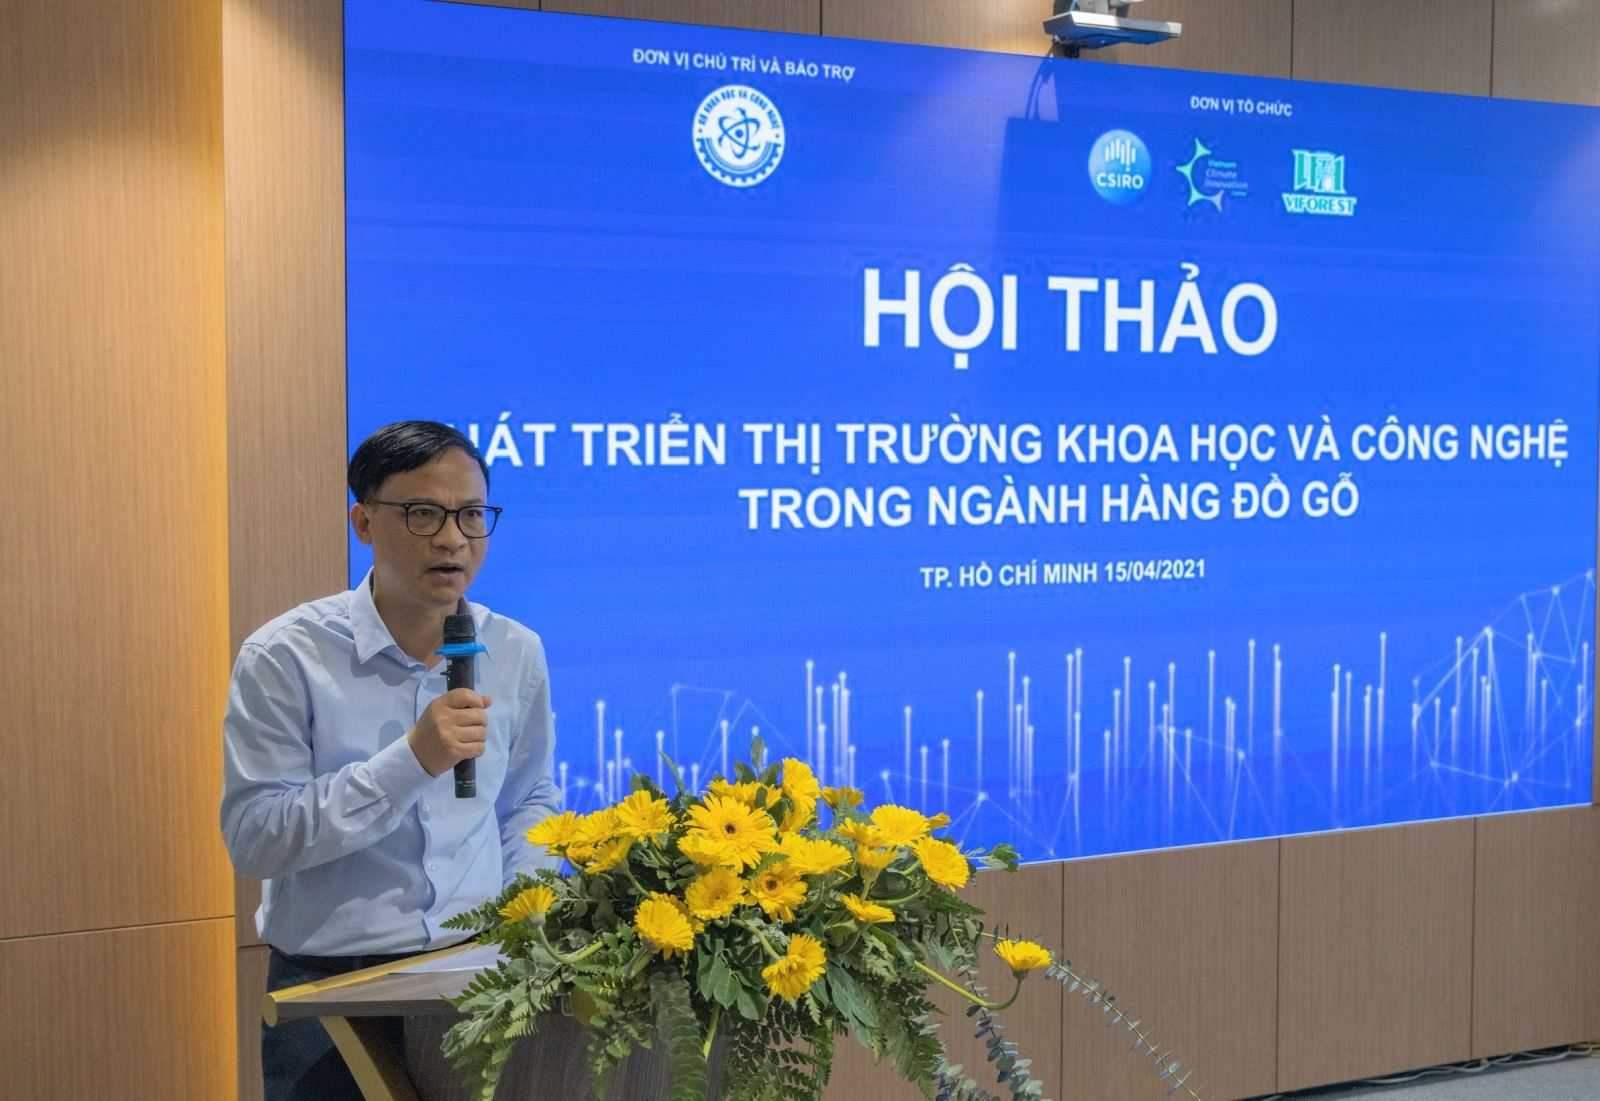 [TV ANGLE] The seminar Developing the science and technology market in the furniture industry was reported by Ho Chi Minh City Television and many domestic press units